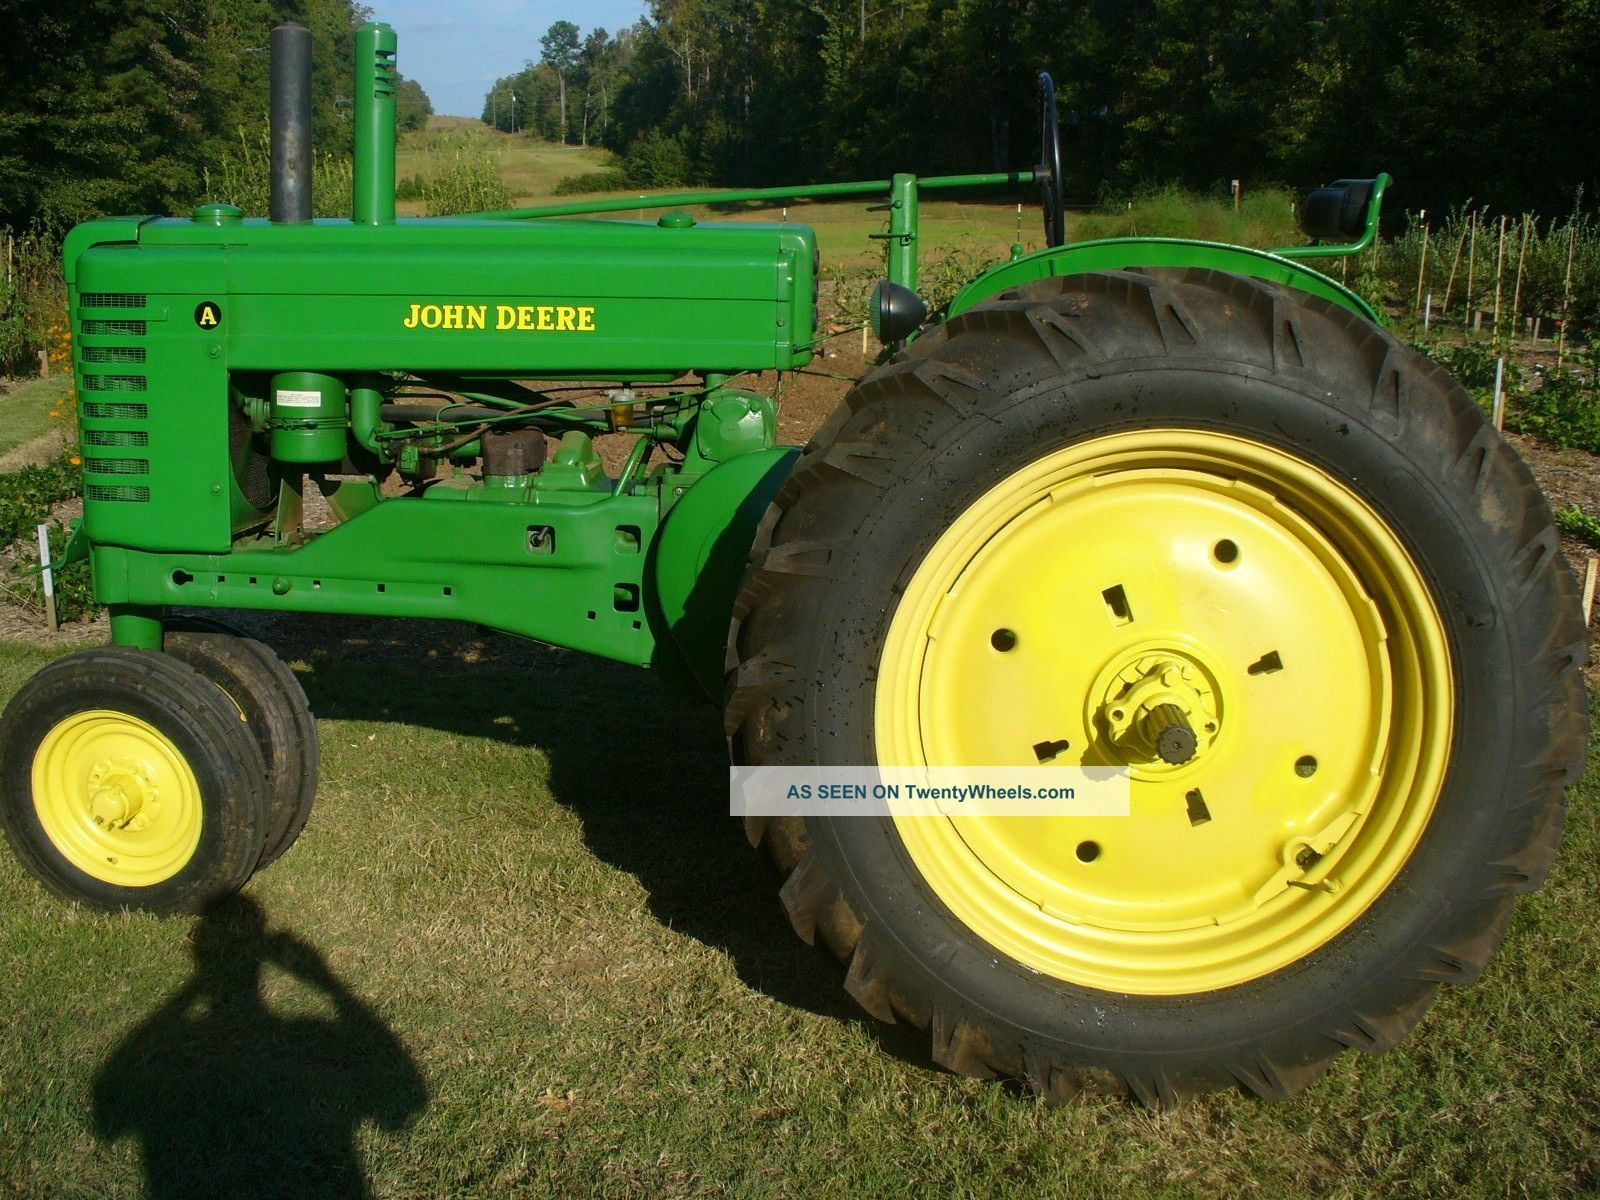 Antique John Deere A Tractor Antique Vintage Farm Equip photo 2 1600x1200